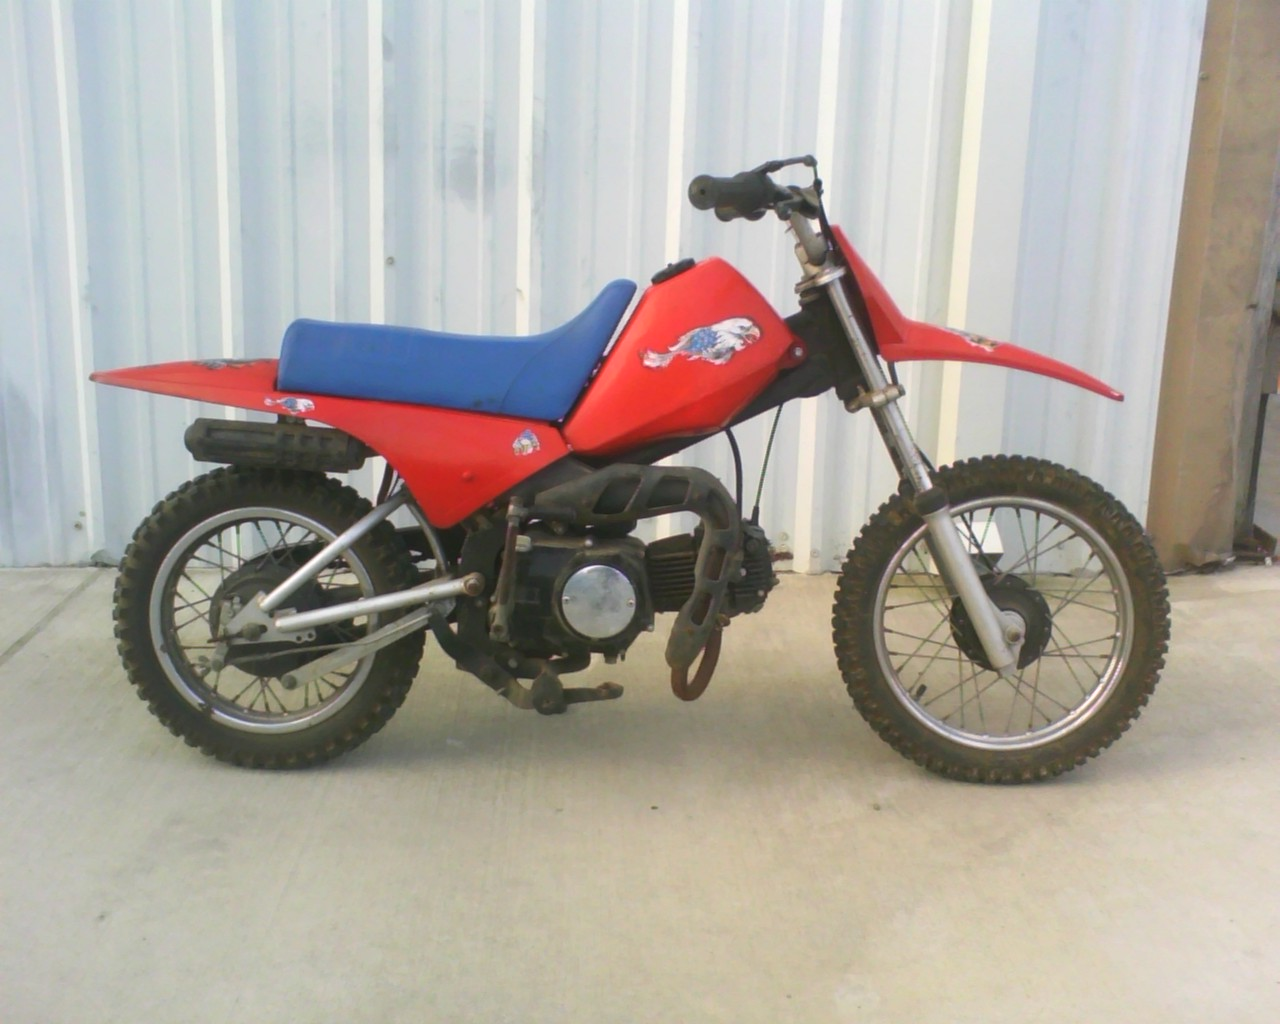 pin 1980 yamaha 80cc dirt bike. Black Bedroom Furniture Sets. Home Design Ideas